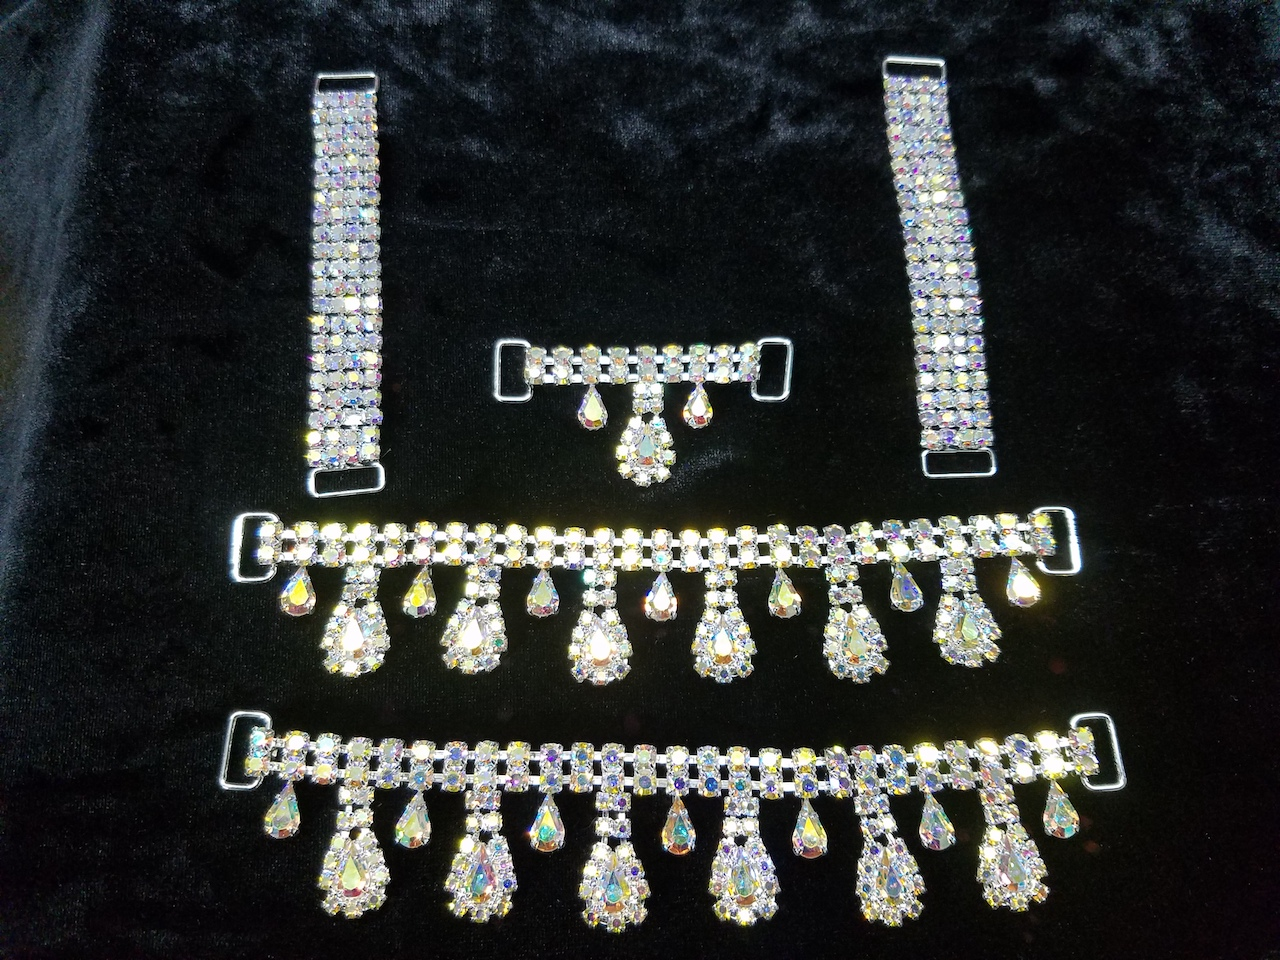 Set B, Silver with clear aurora borealis crystals, $85.00